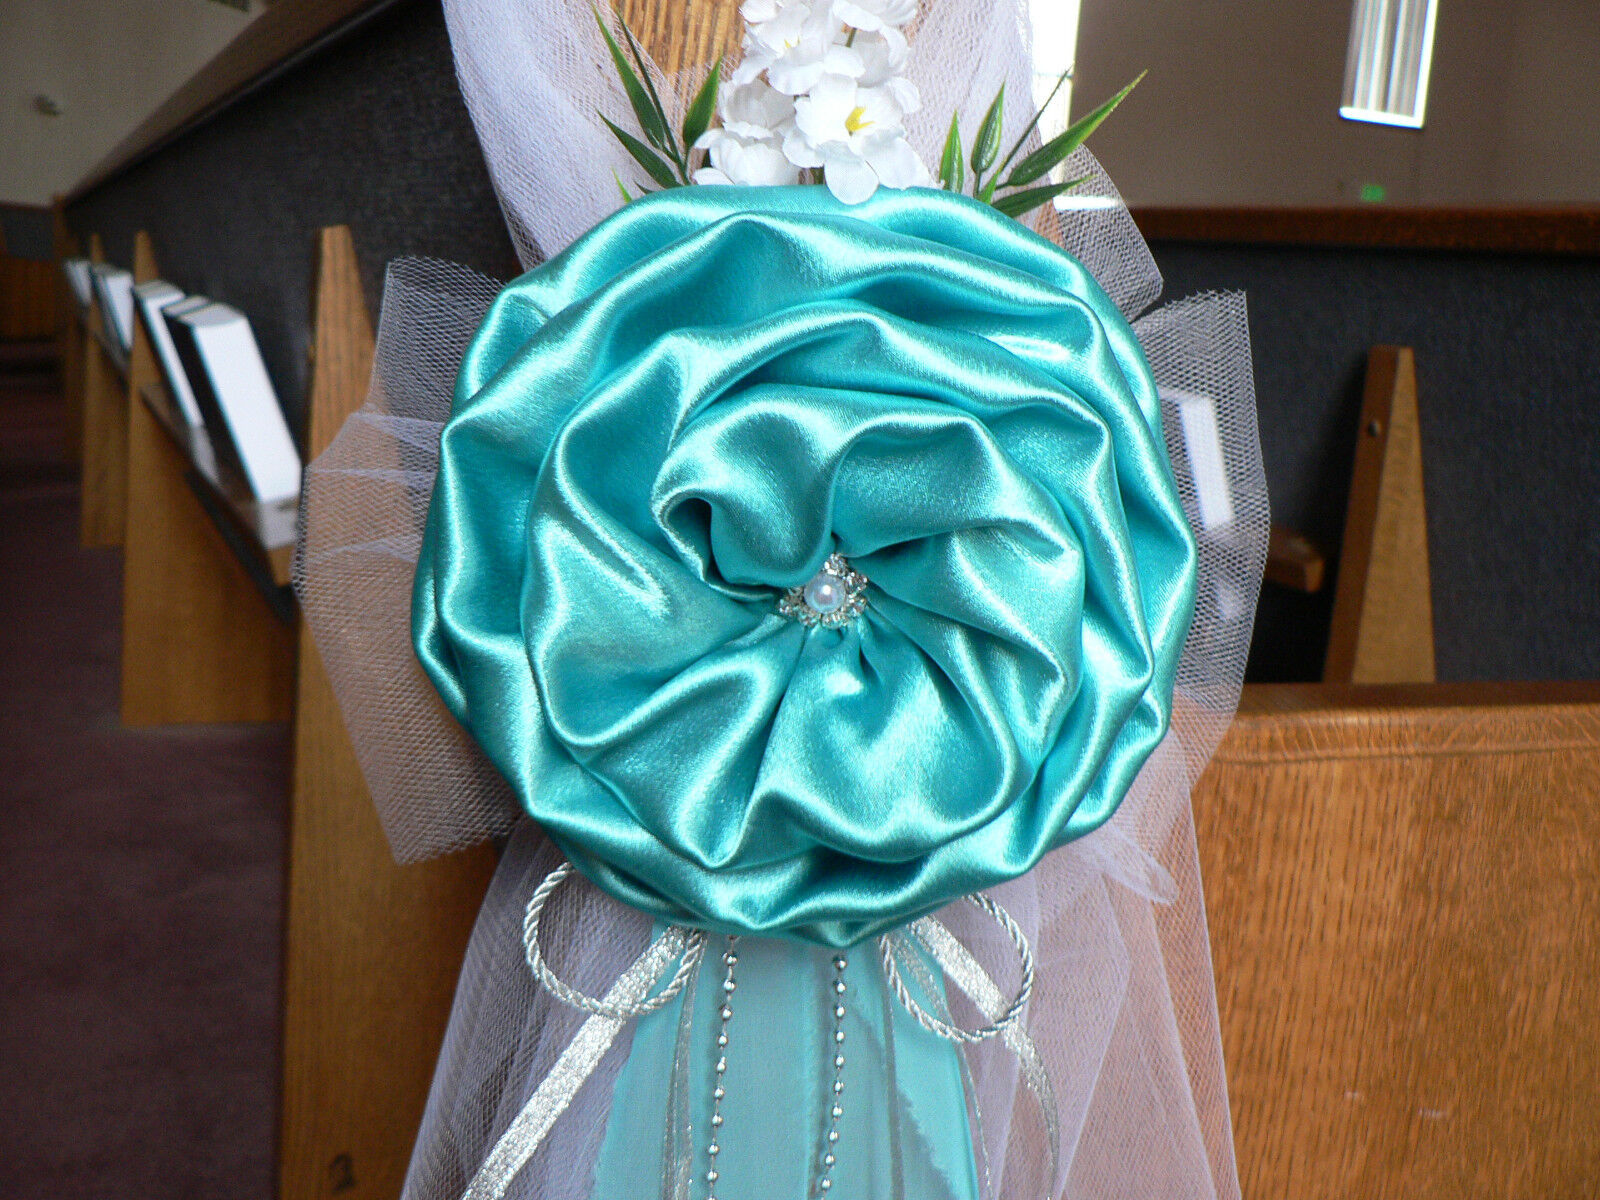 tiffany blue wedding chair covers springs for rocking chairs decor bows pew silver